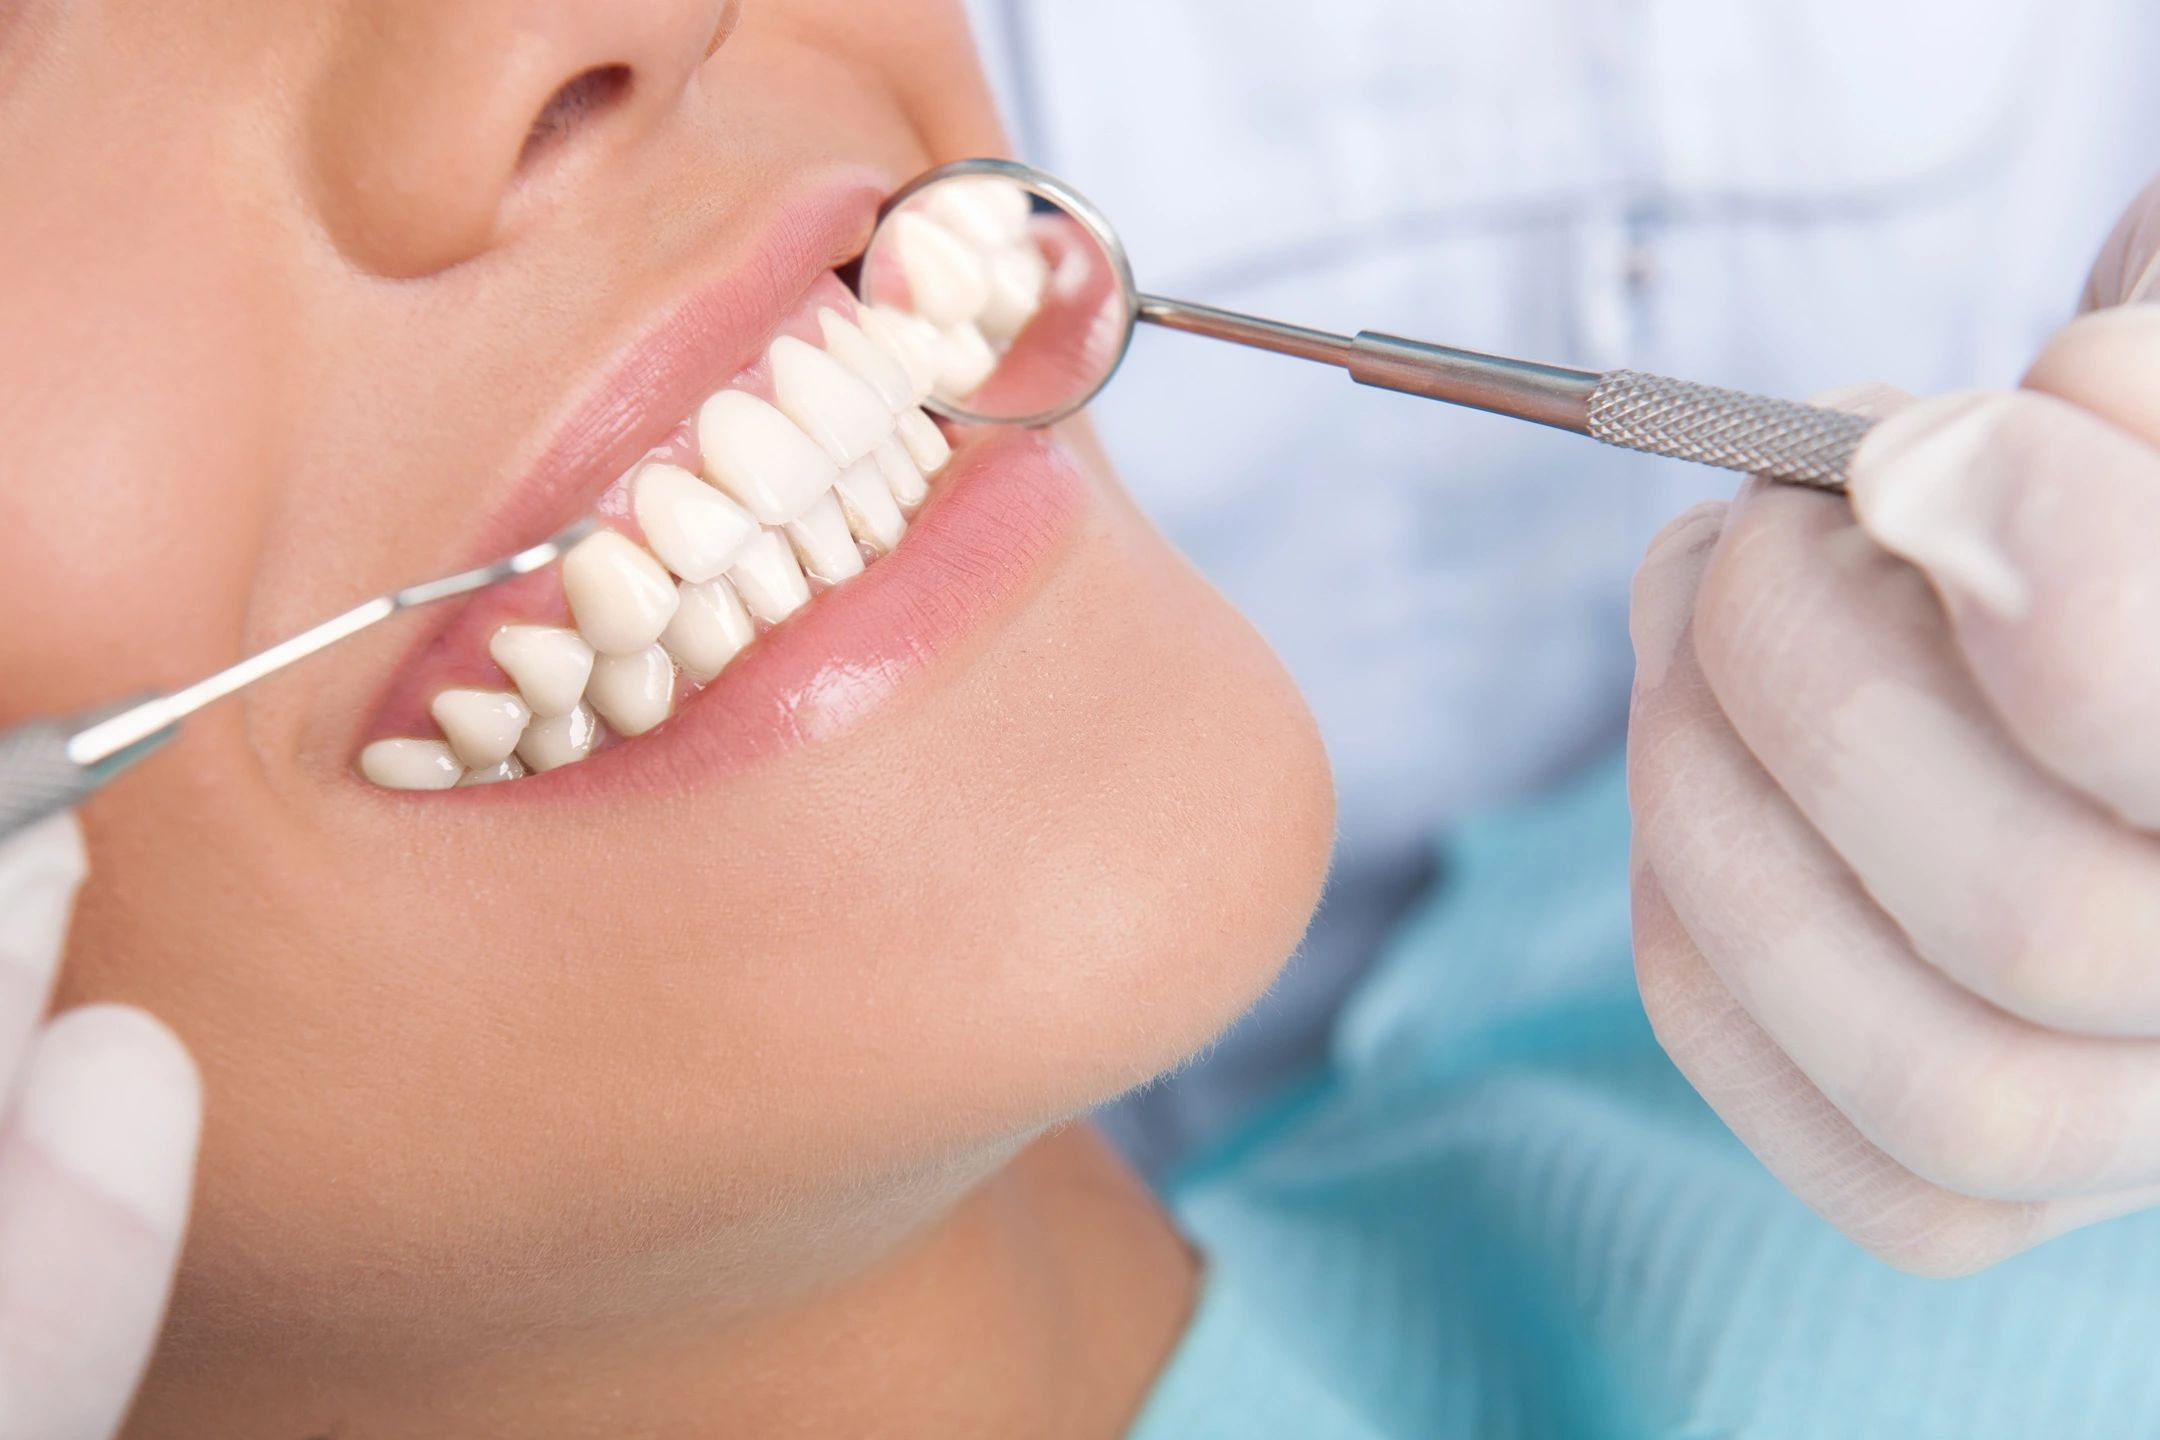 dentist  dentistry Florence KY  Northern Kentucky  Cincinnati  cleaning  whitening  cavity annual dental exam  looking for new dentist